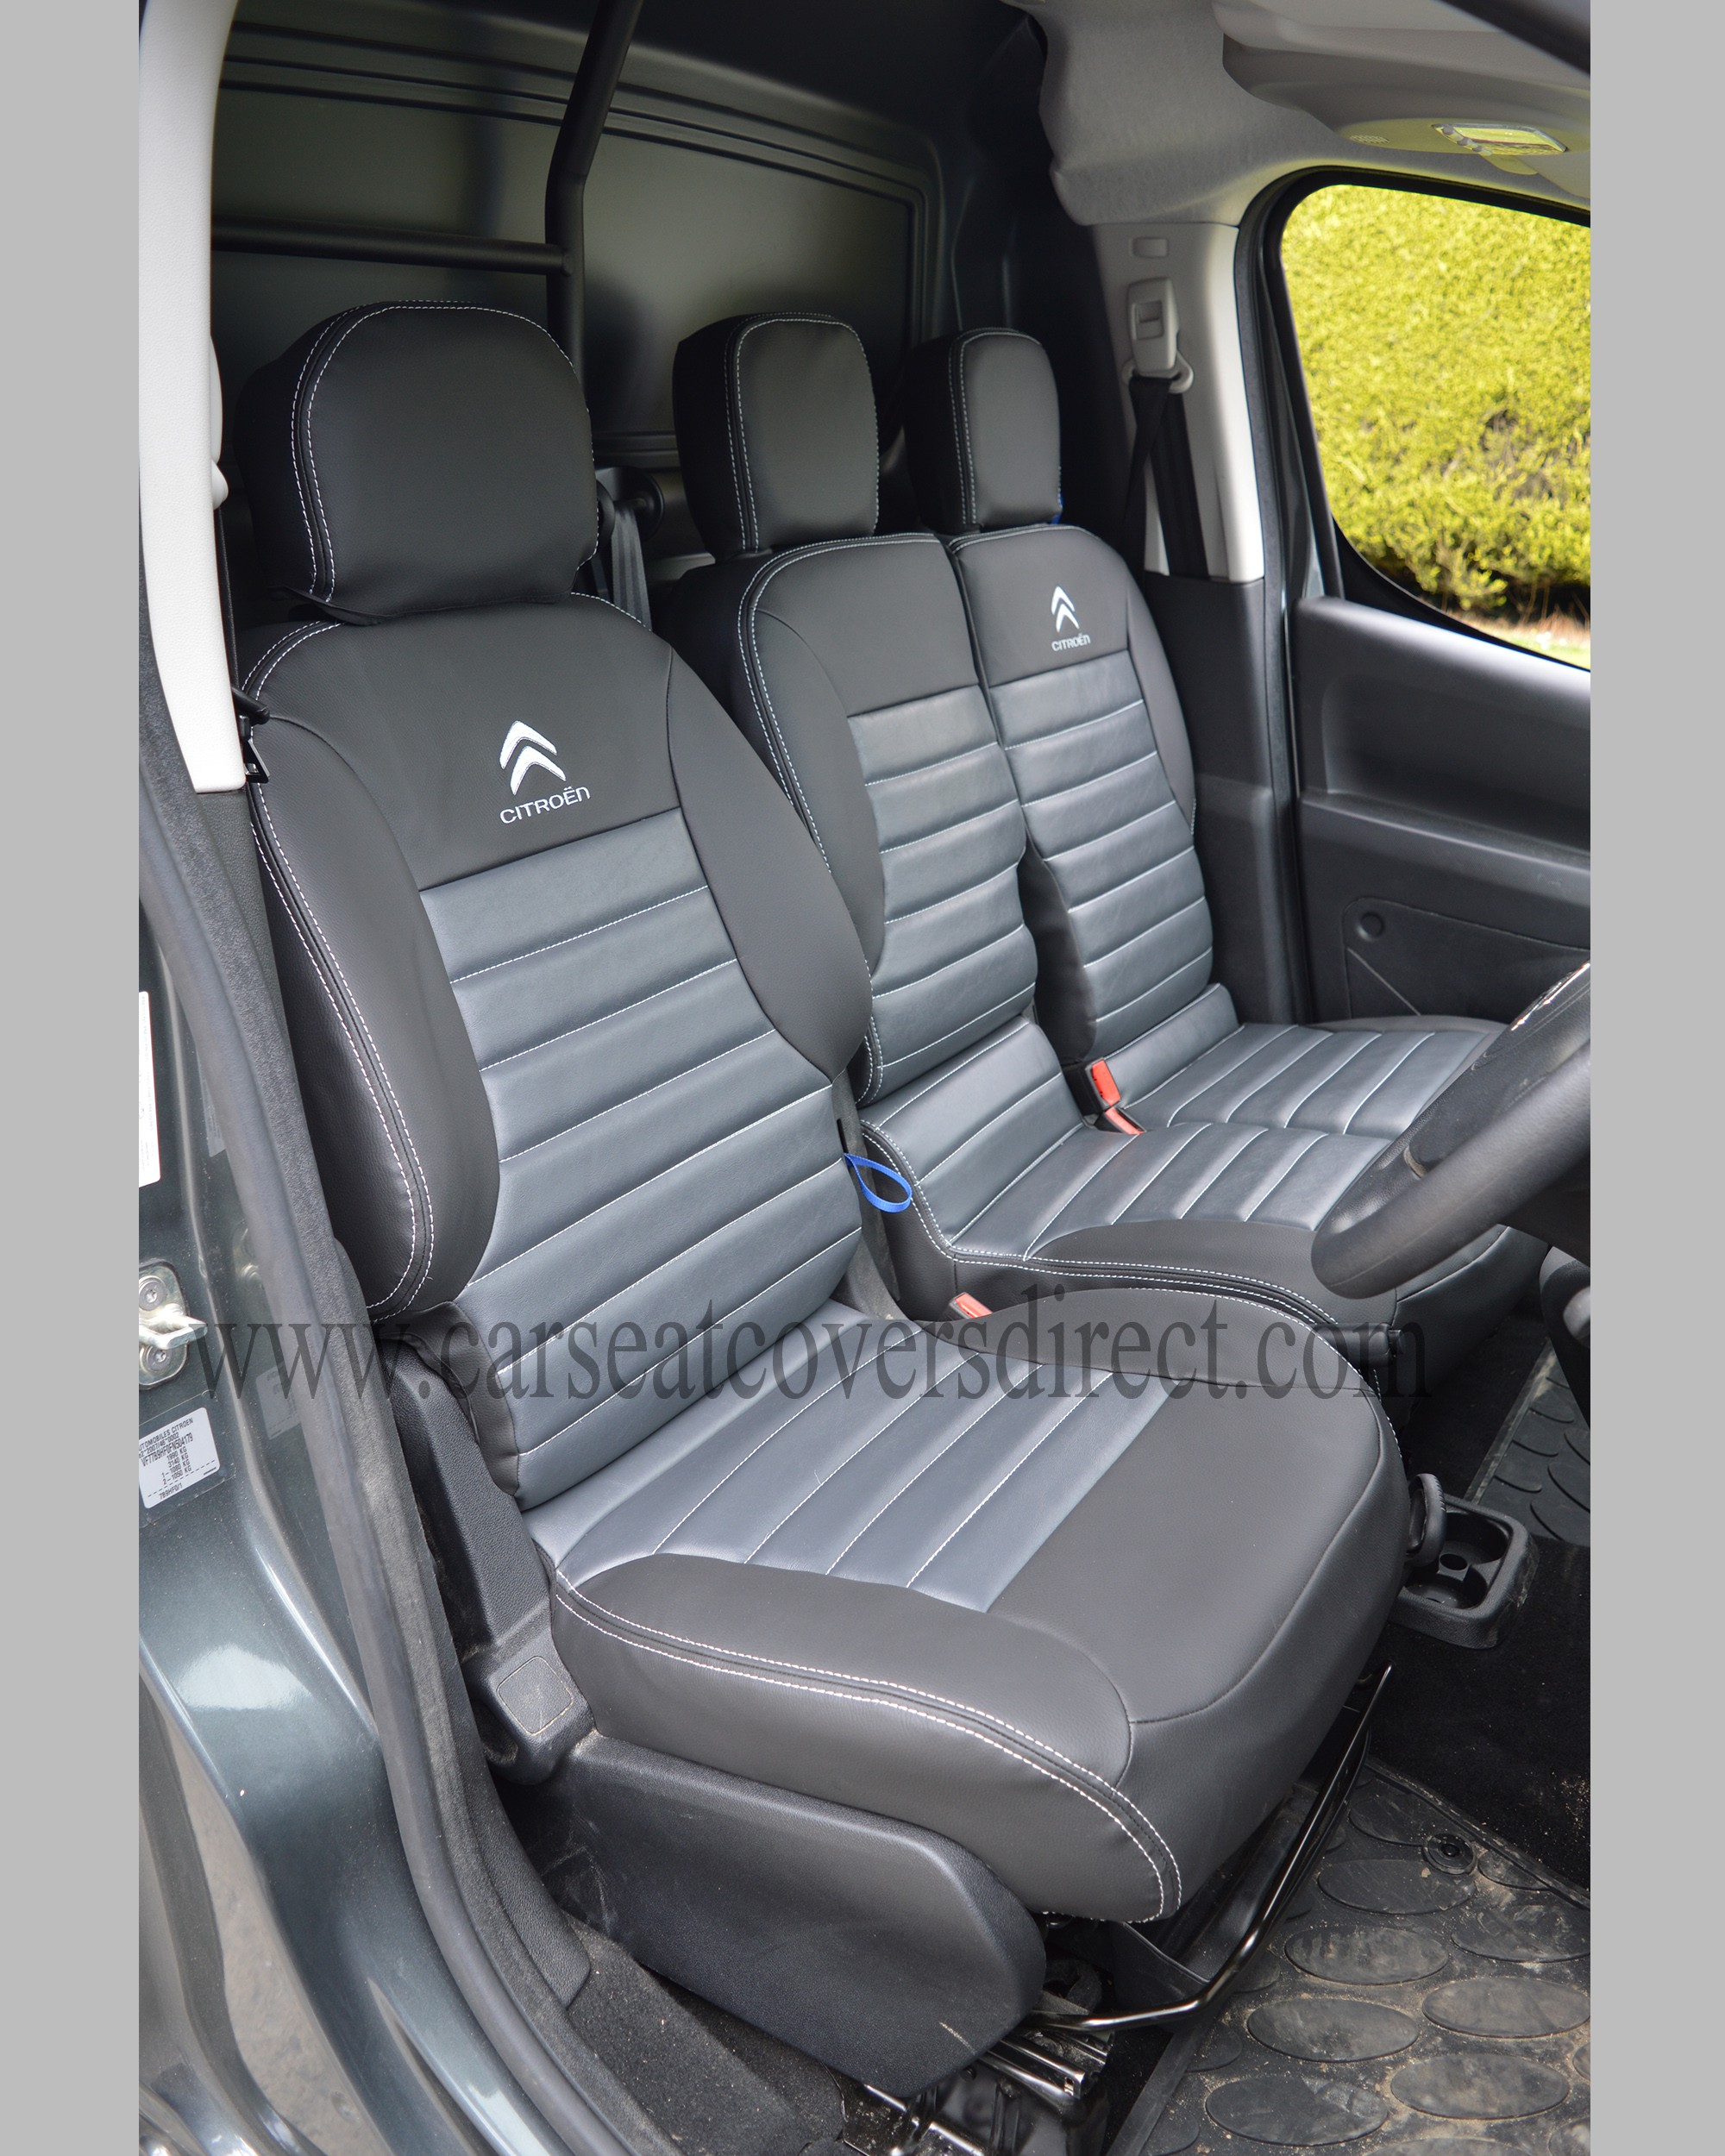 Citroen Berlingo Tailored Quilted Seat Covers